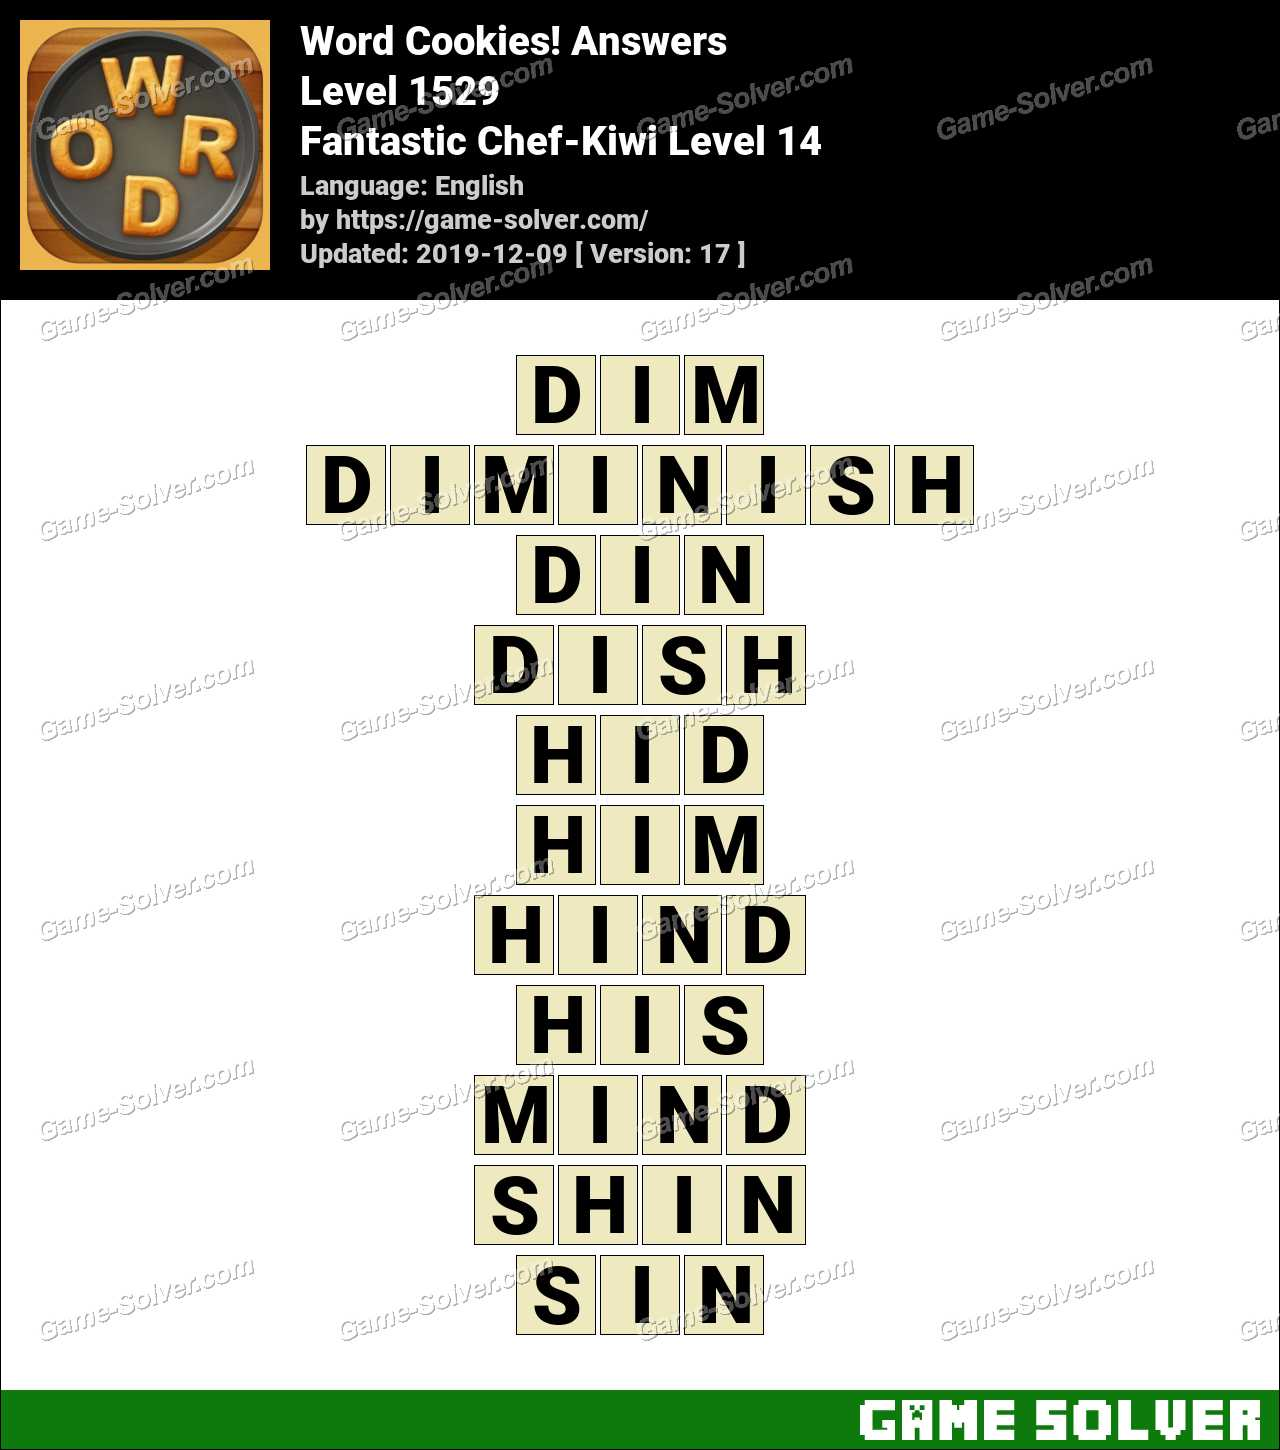 Word Cookies Fantastic Chef-Kiwi Level 14 Answers